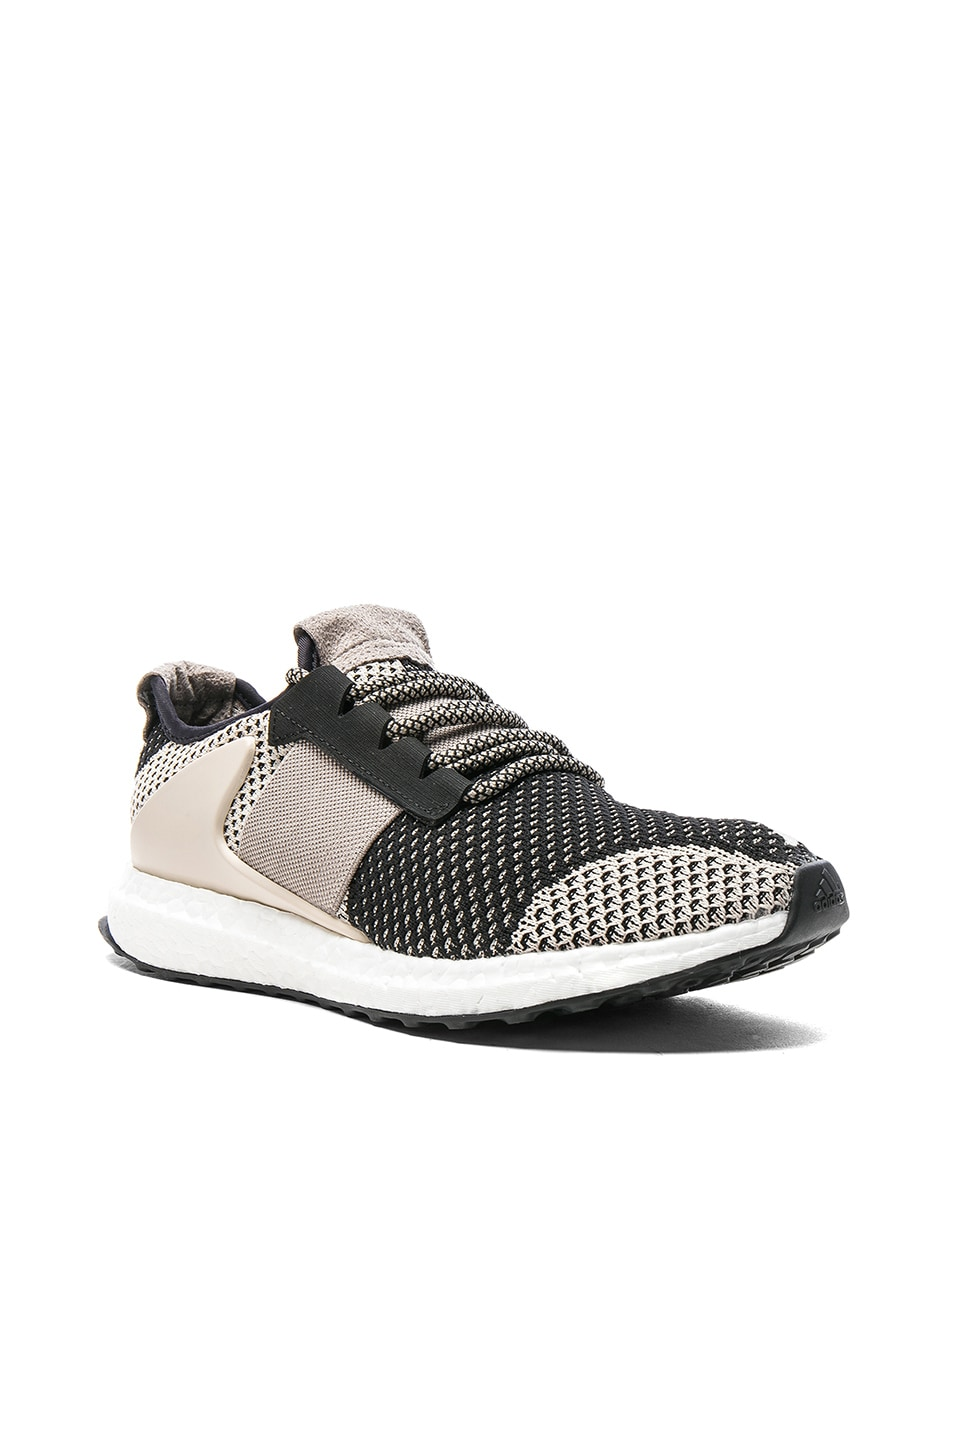 on sale 16544 4be30 Image 1 of adidas Day One Ado Ultraboost ZG in Clear Brown  Light Brown